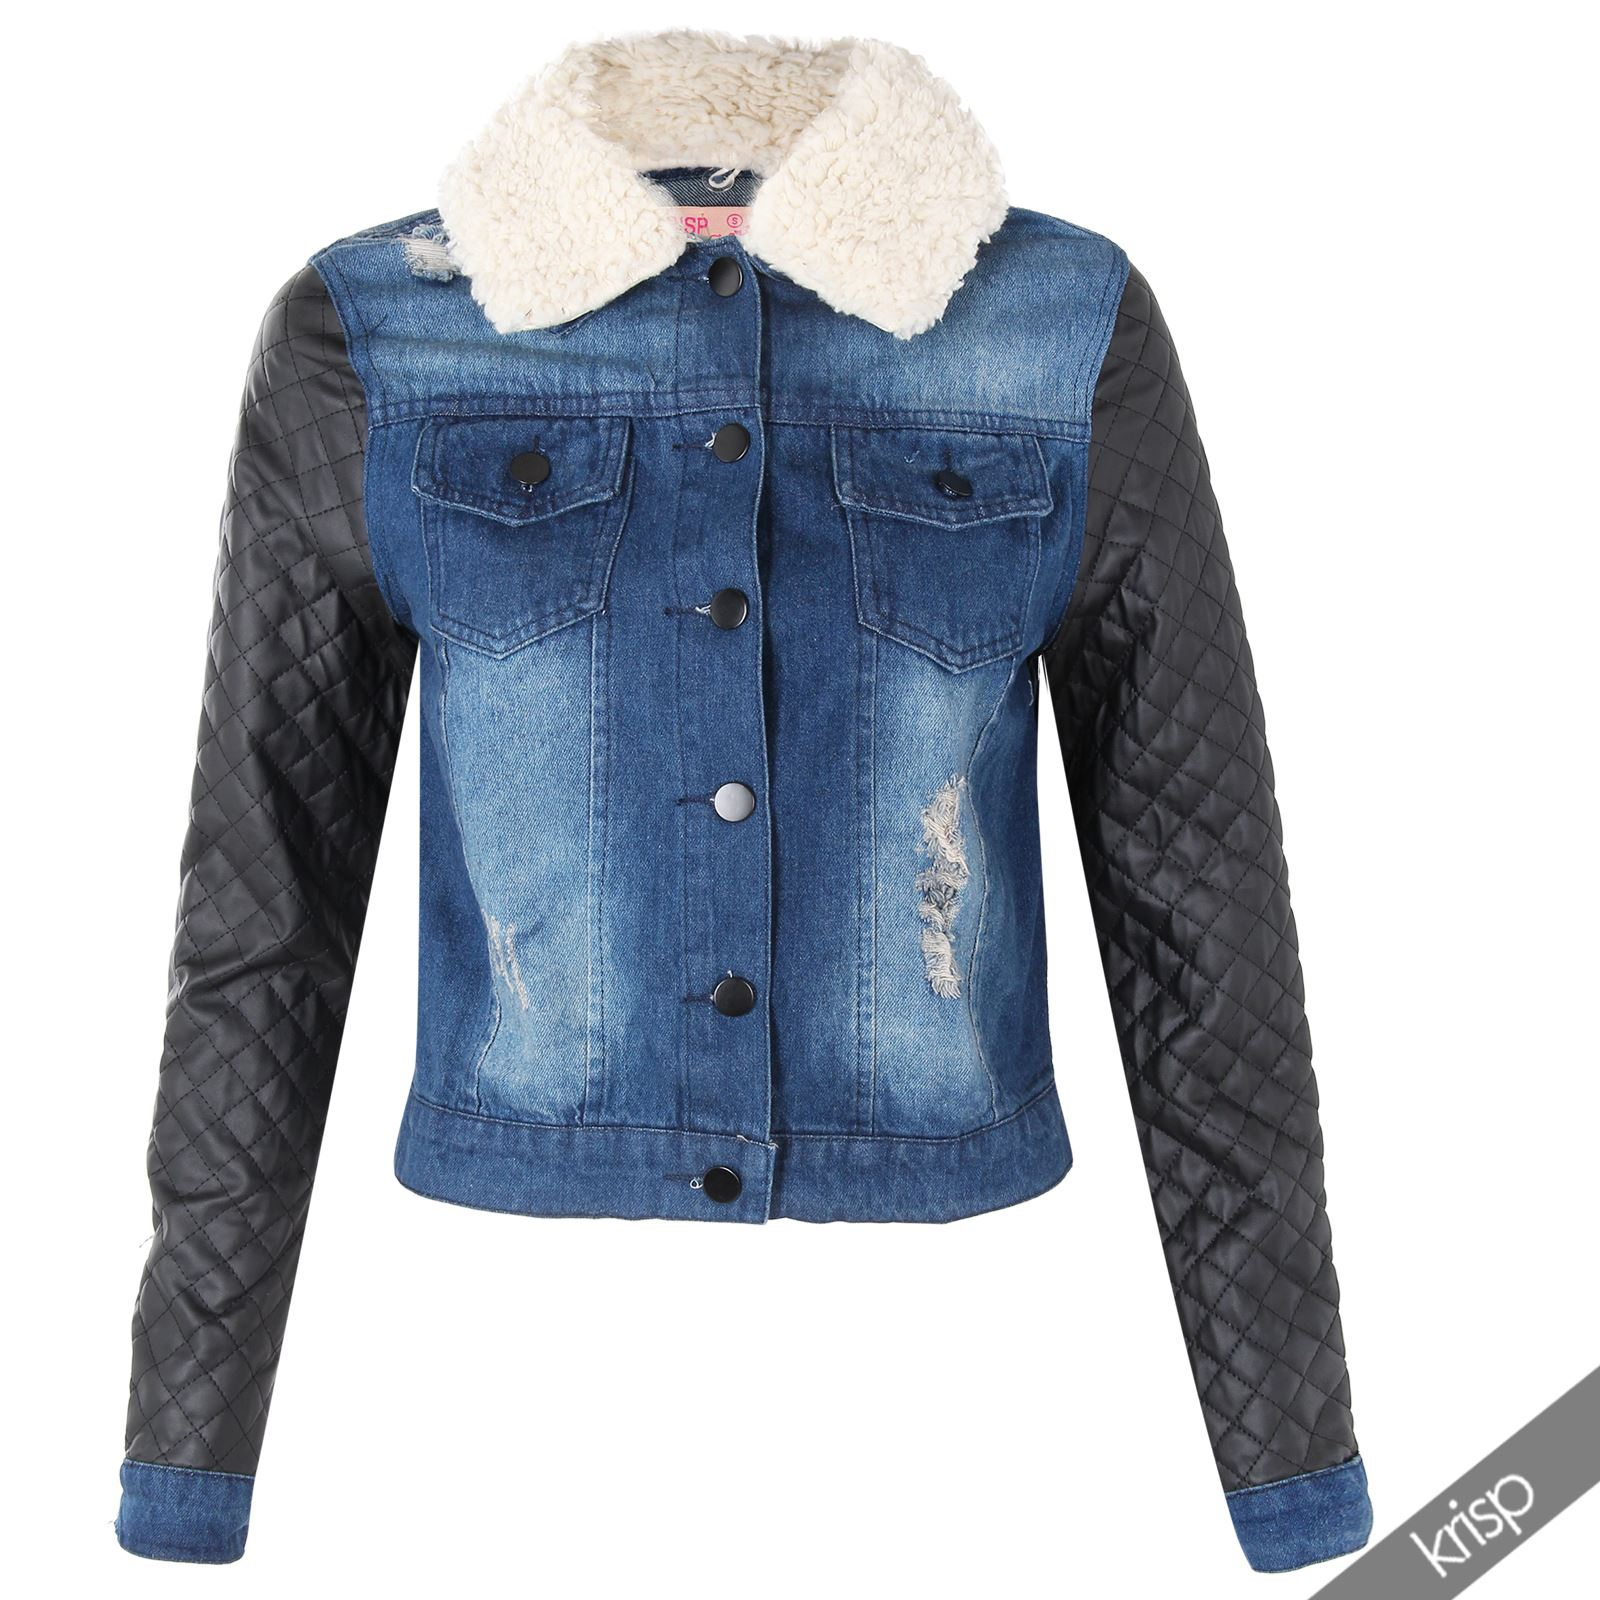 krisp damen jeansjacke denim jeans jacke bikerjacke. Black Bedroom Furniture Sets. Home Design Ideas